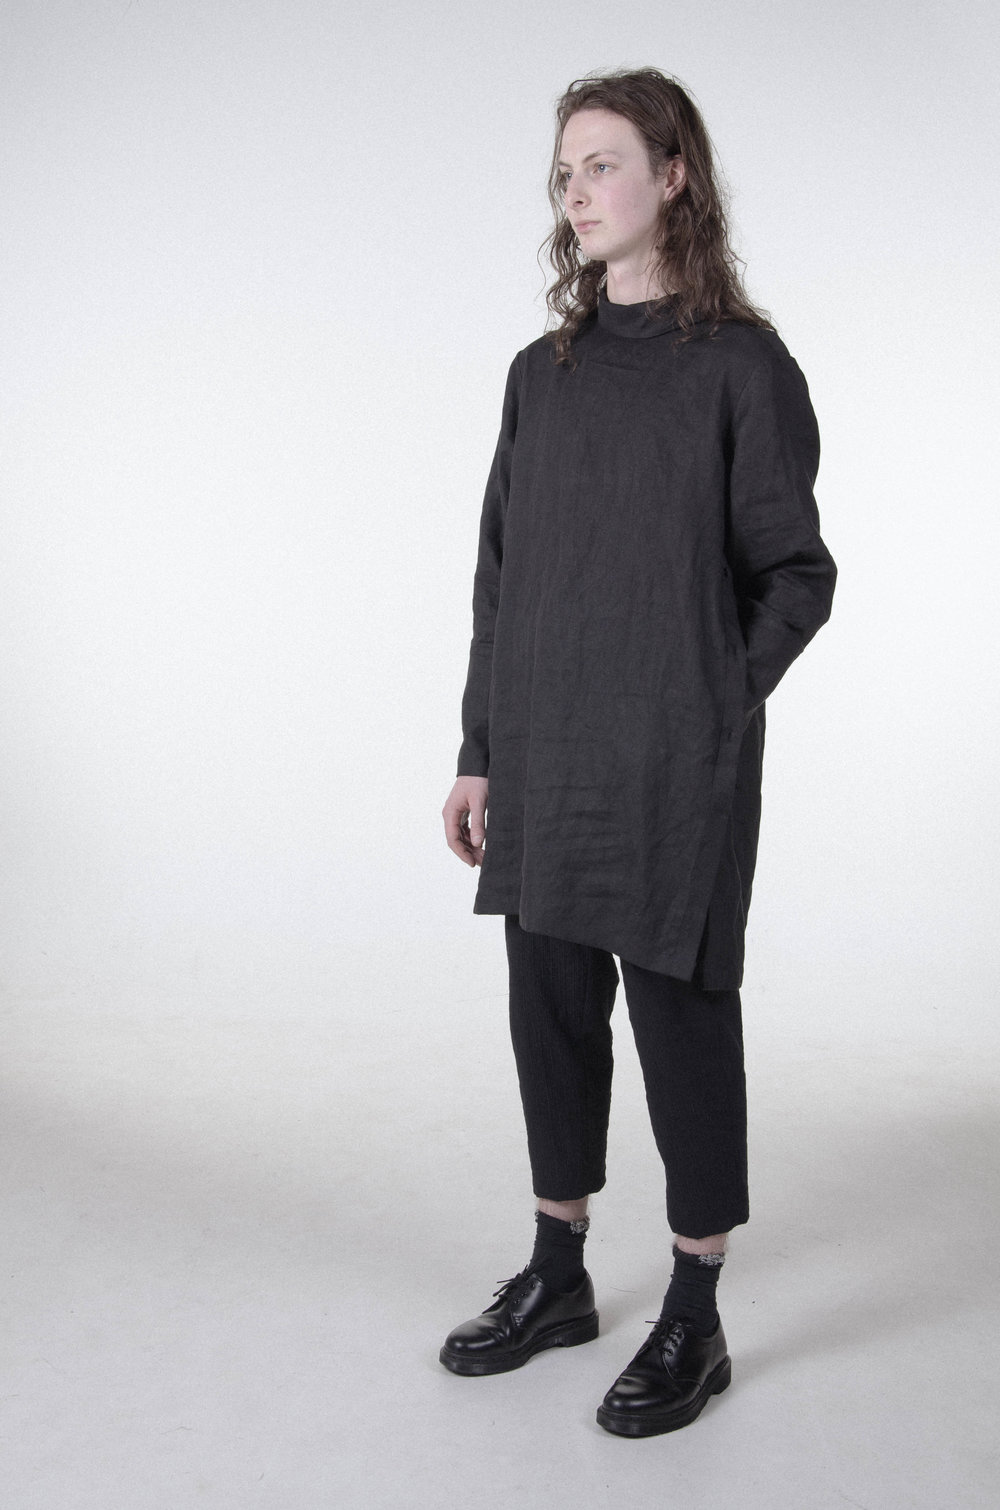 agoraphobia-collective-britt-pooley-embroidered-cotton-pant